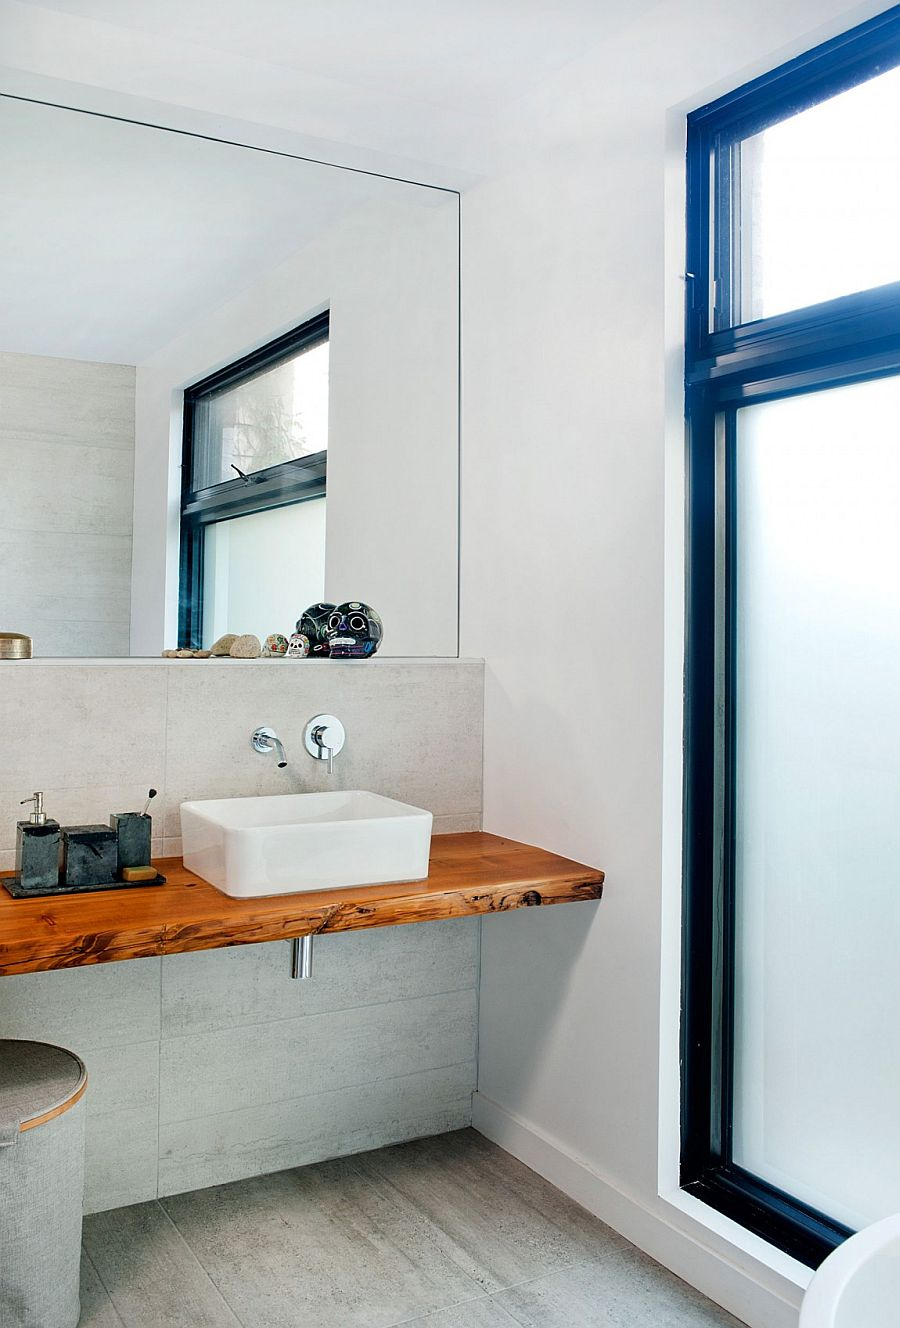 Sleek bathroom vanity design saves up on space